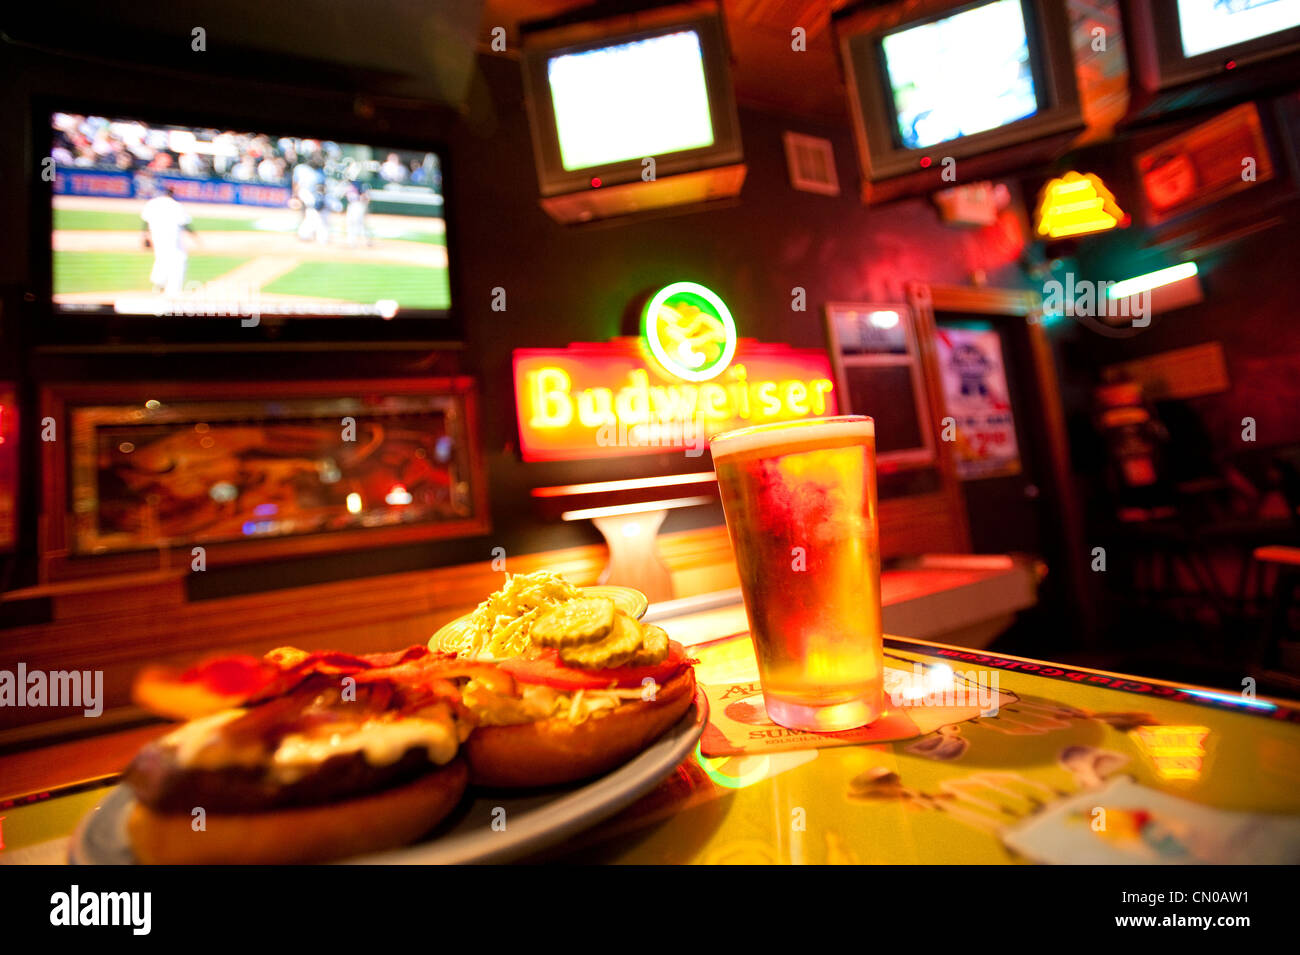 Sports Bar Interior With Beer Burger And Multiple Tv Monitors Stock Photo Alamy